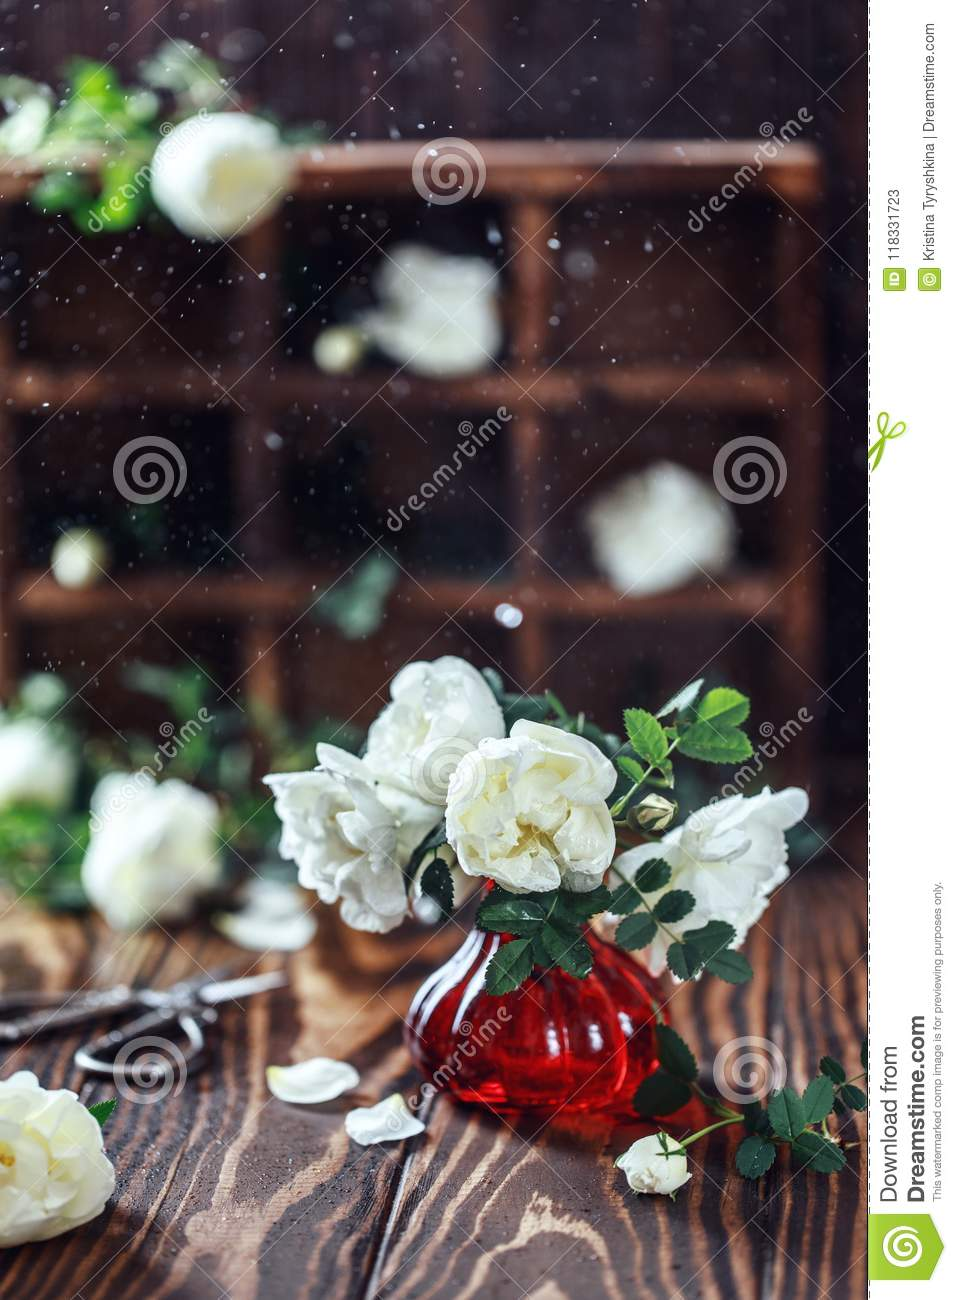 Bouquet Of Roses In A Vase On Wooden Rustic Background Flower Composition Stock Image Image Of Marriage Bouquet 118331723